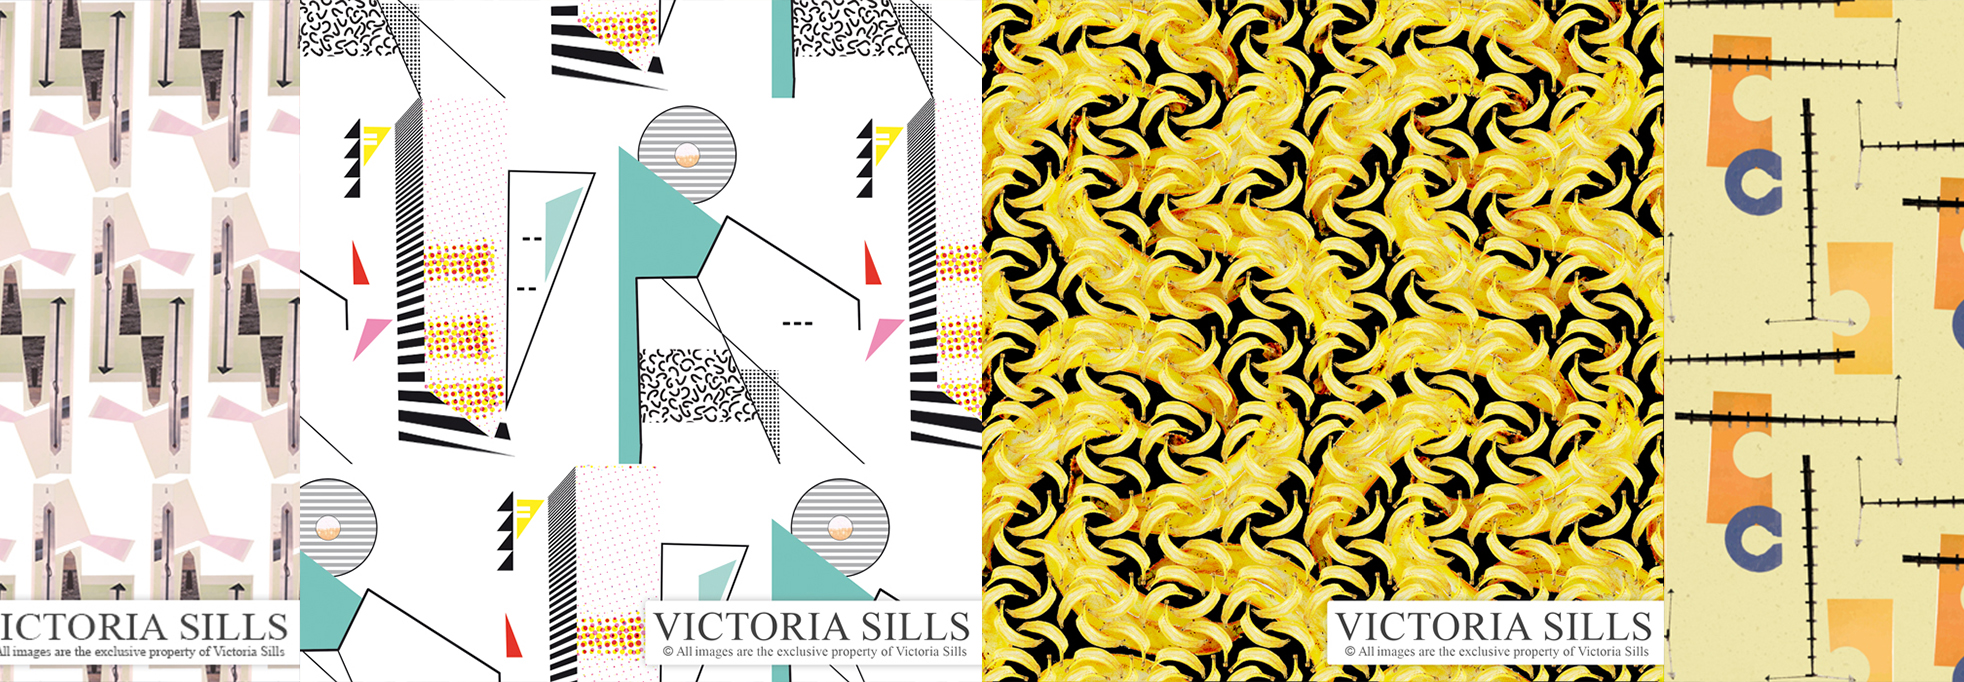 Victoria Sills created pattern, 4 panels with green and pink blocks, bananas, 80s print and orange/blue/yellow.